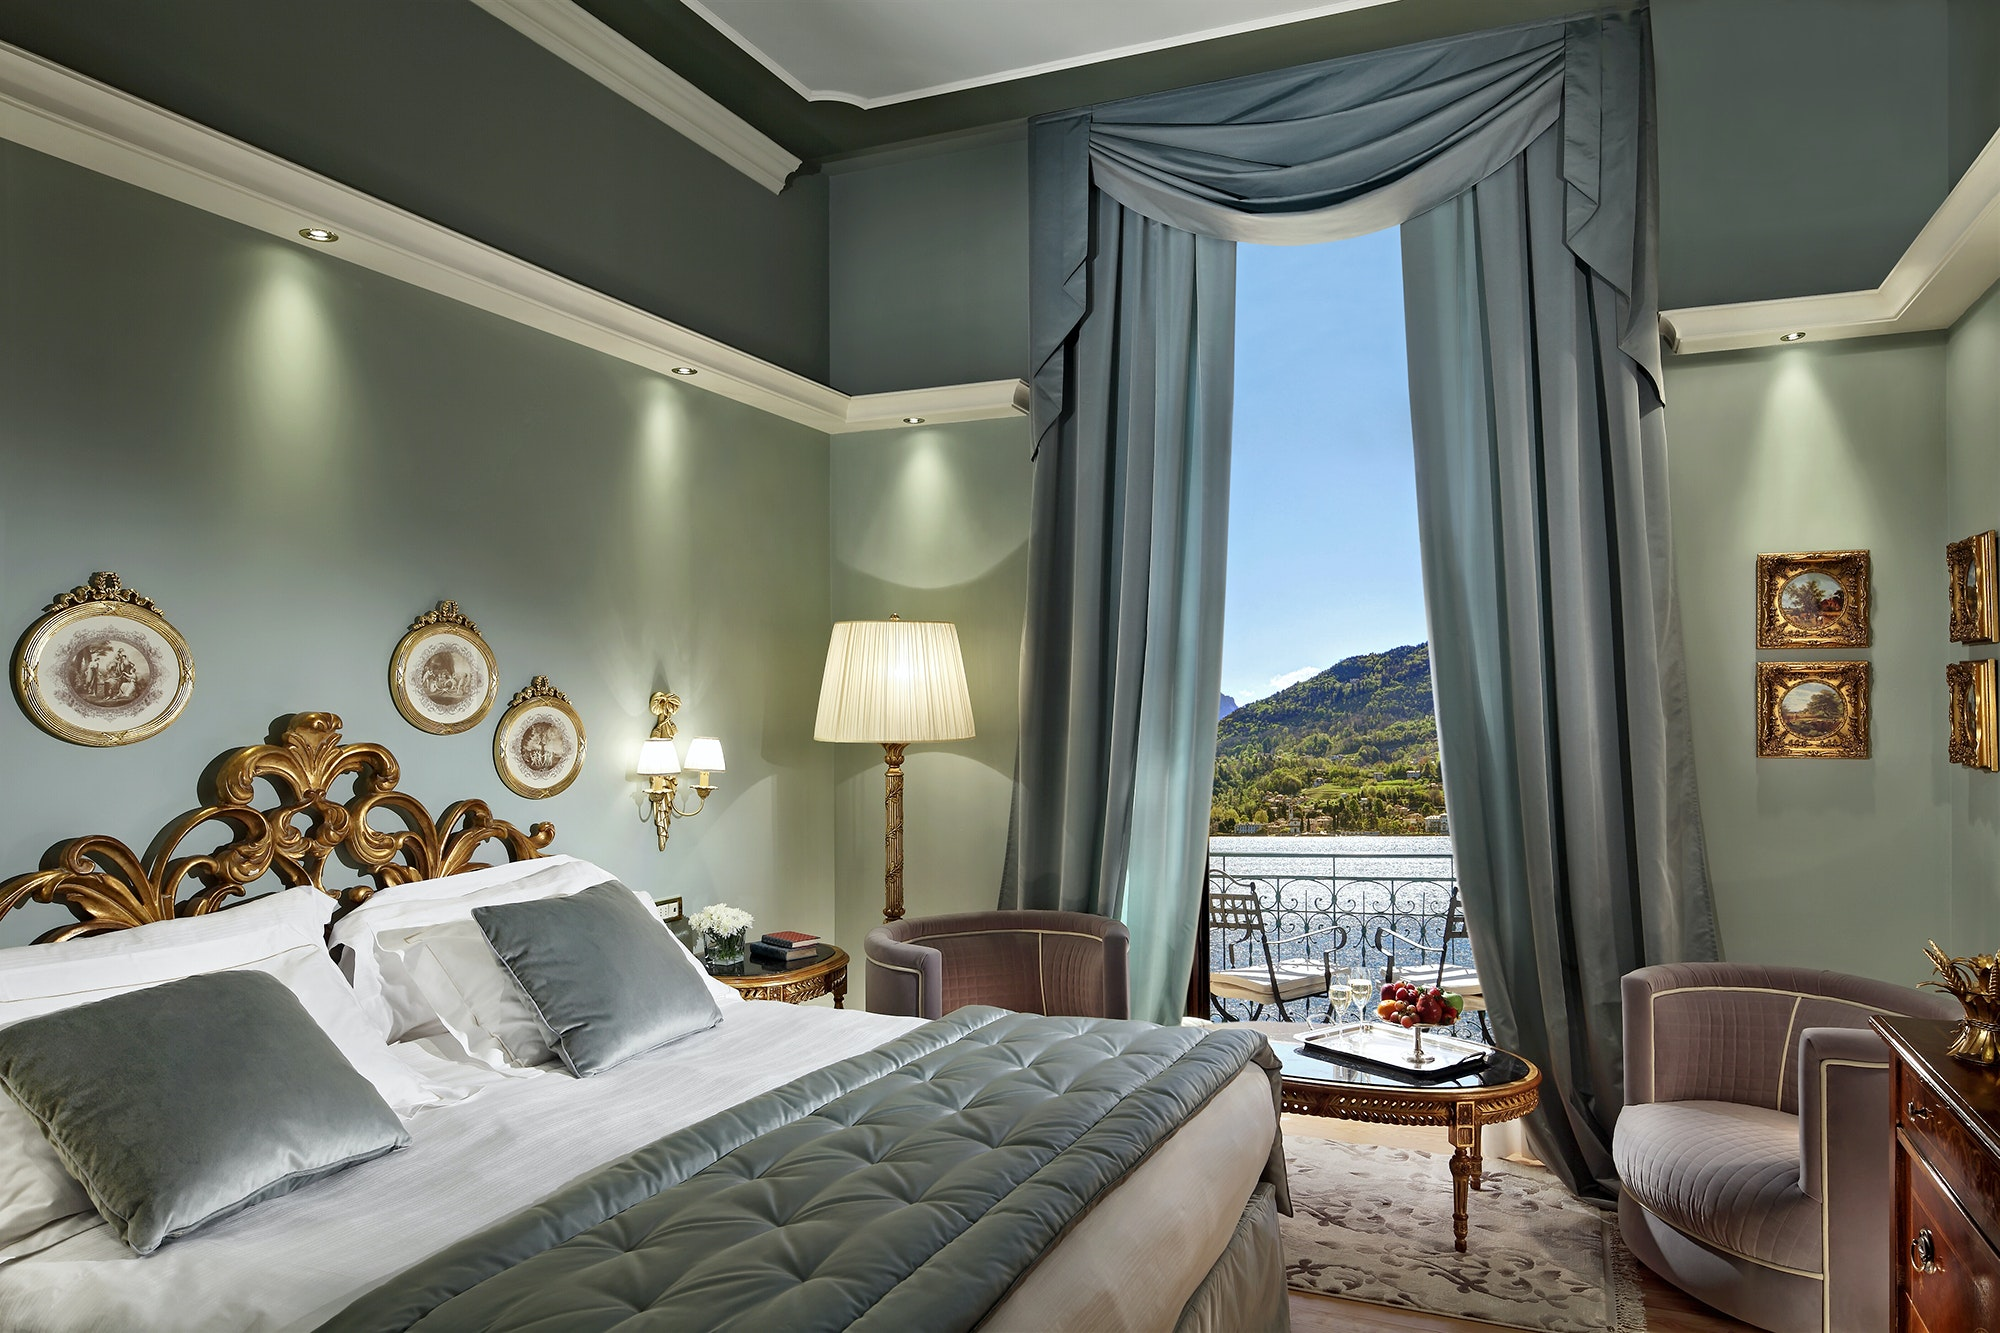 After finding a packet of love letters hidden in a wall, the owners of the Grand Hotel Tremezzo now leave copies of the notes on guests' pillows.